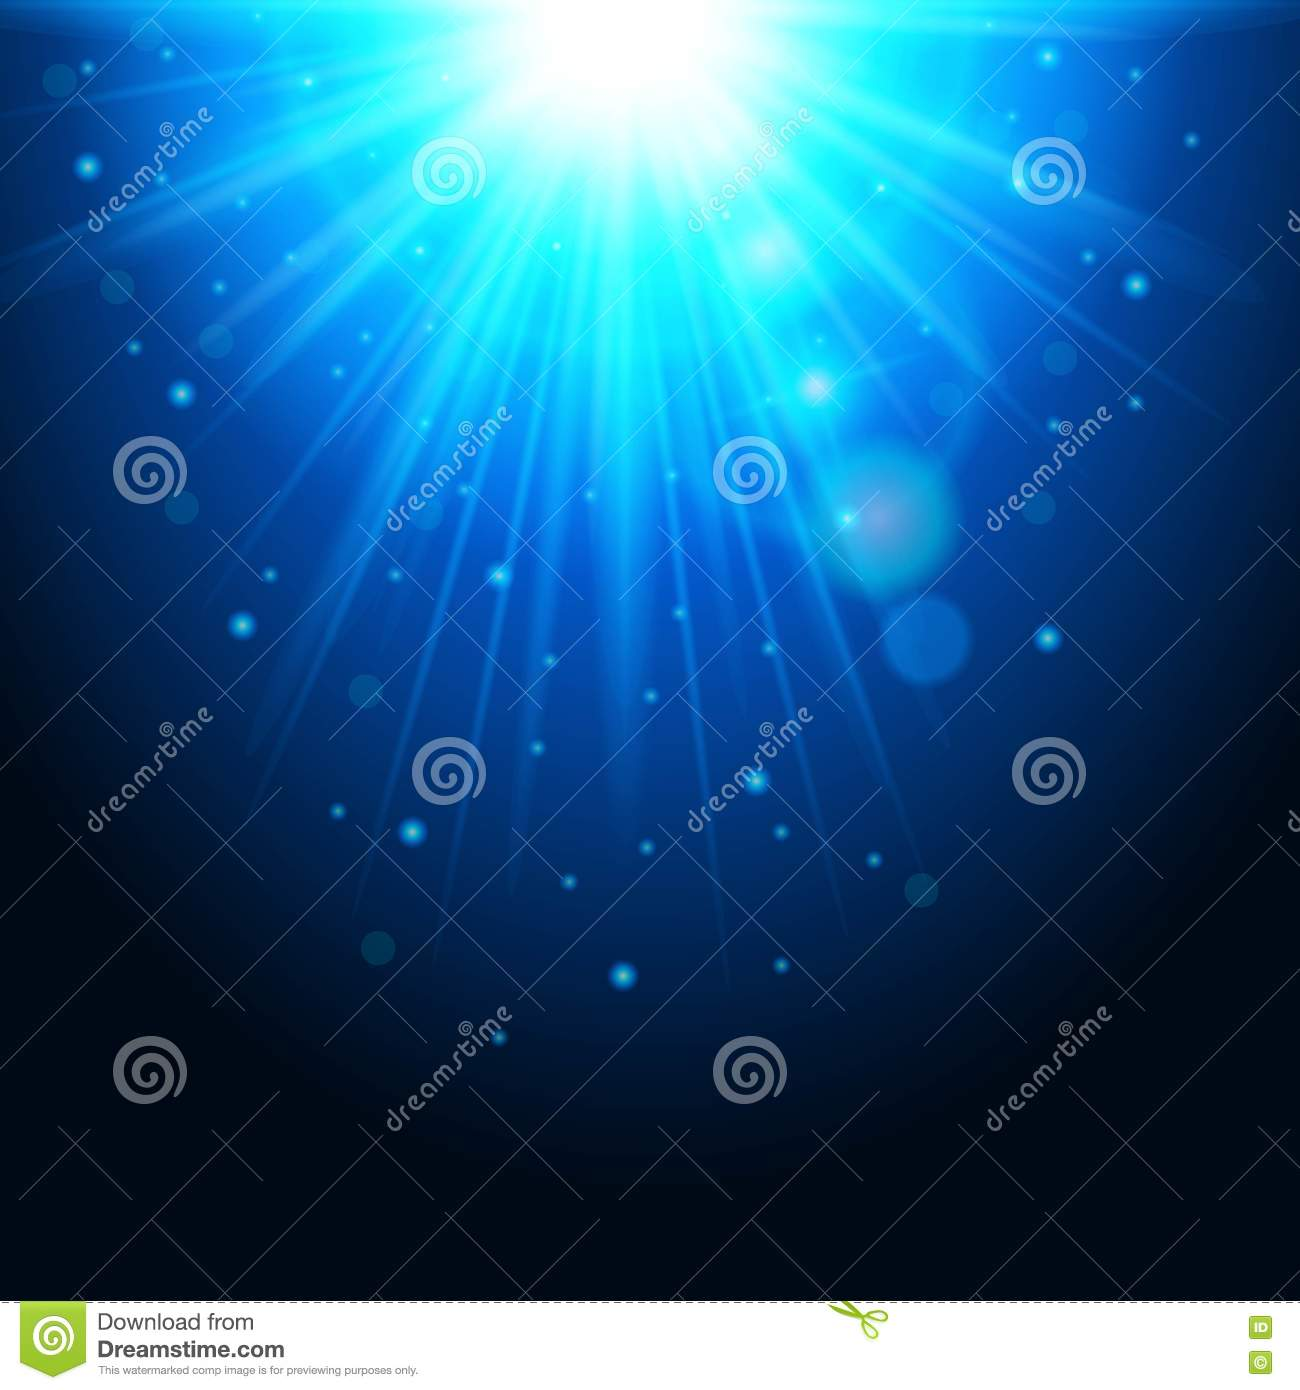 Magic background with rays of light, glowing effect. Blue lights sparkles on a transparent . Vector illustration